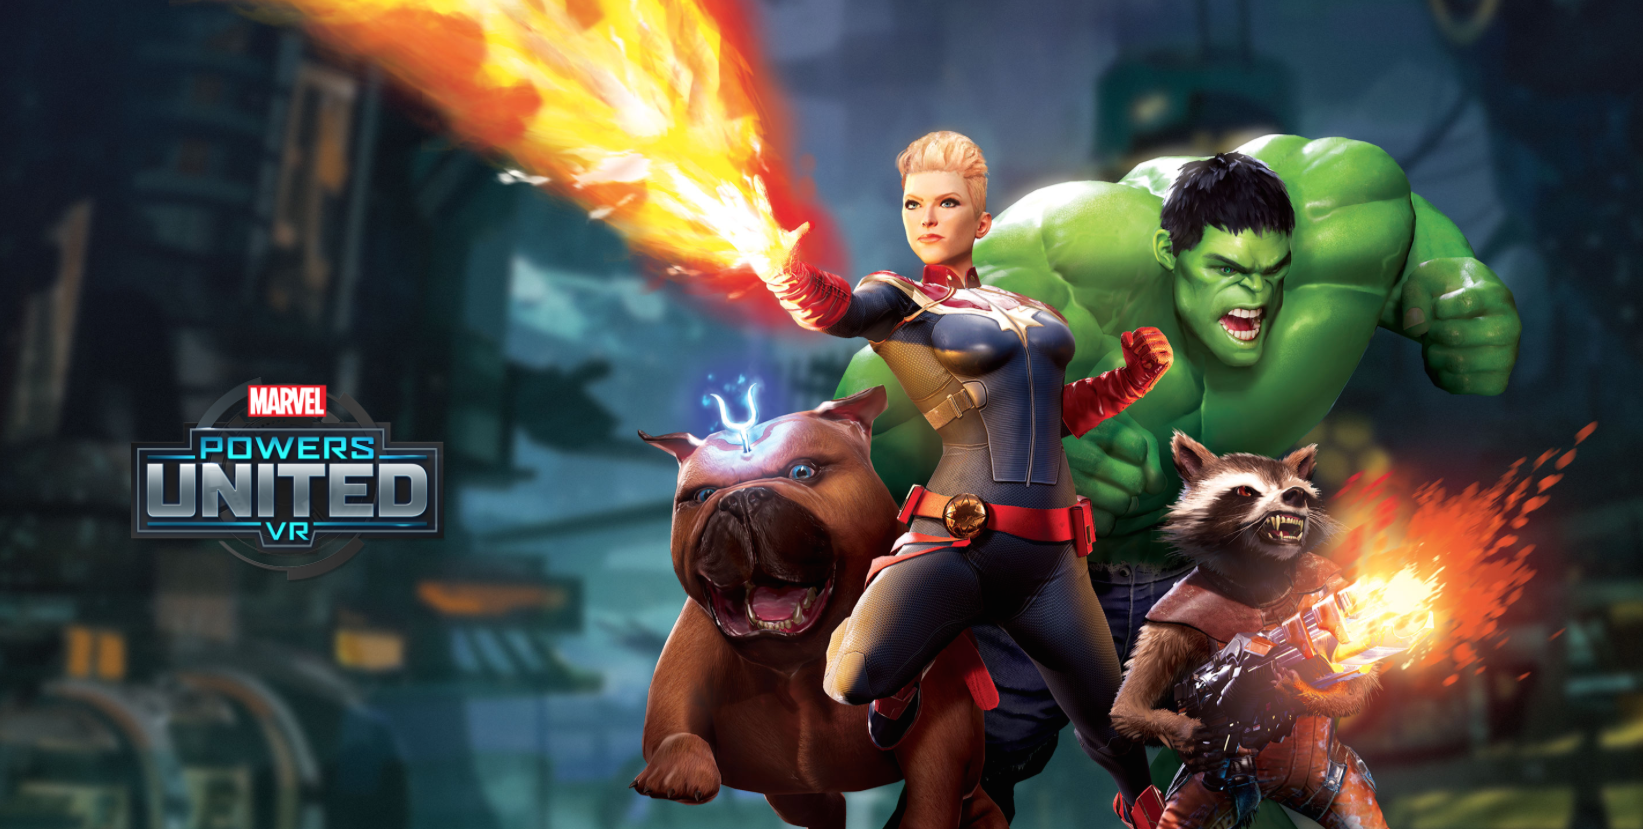 New Marvel VR Game Announced for Oculus Rift at D23